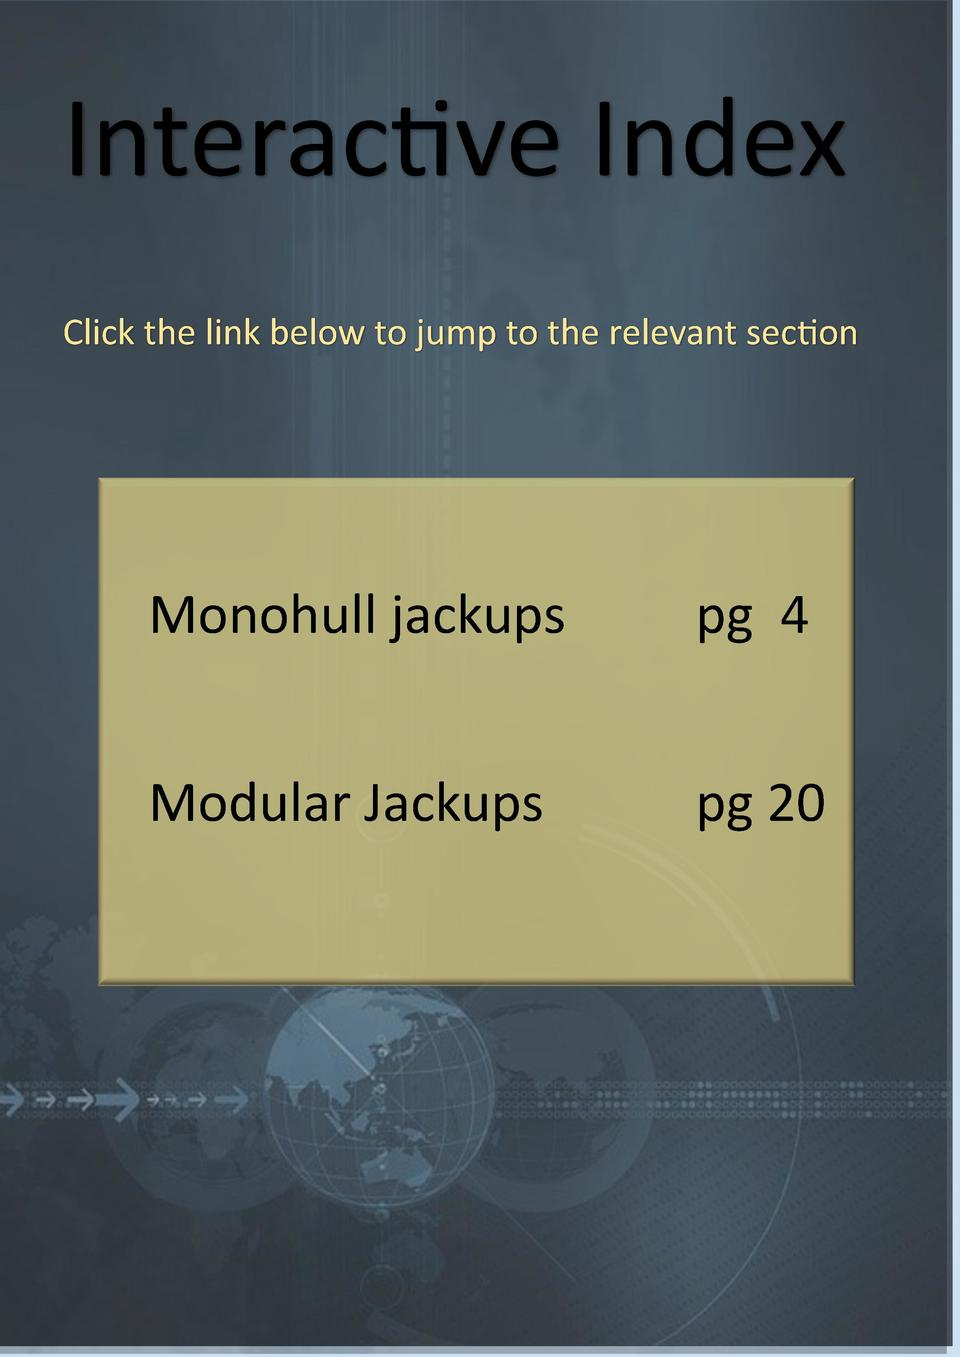 Interactive Index Click the link below to jump to the relevant section  Monohull jackups  pg 4  Modular Jackups  pg 20